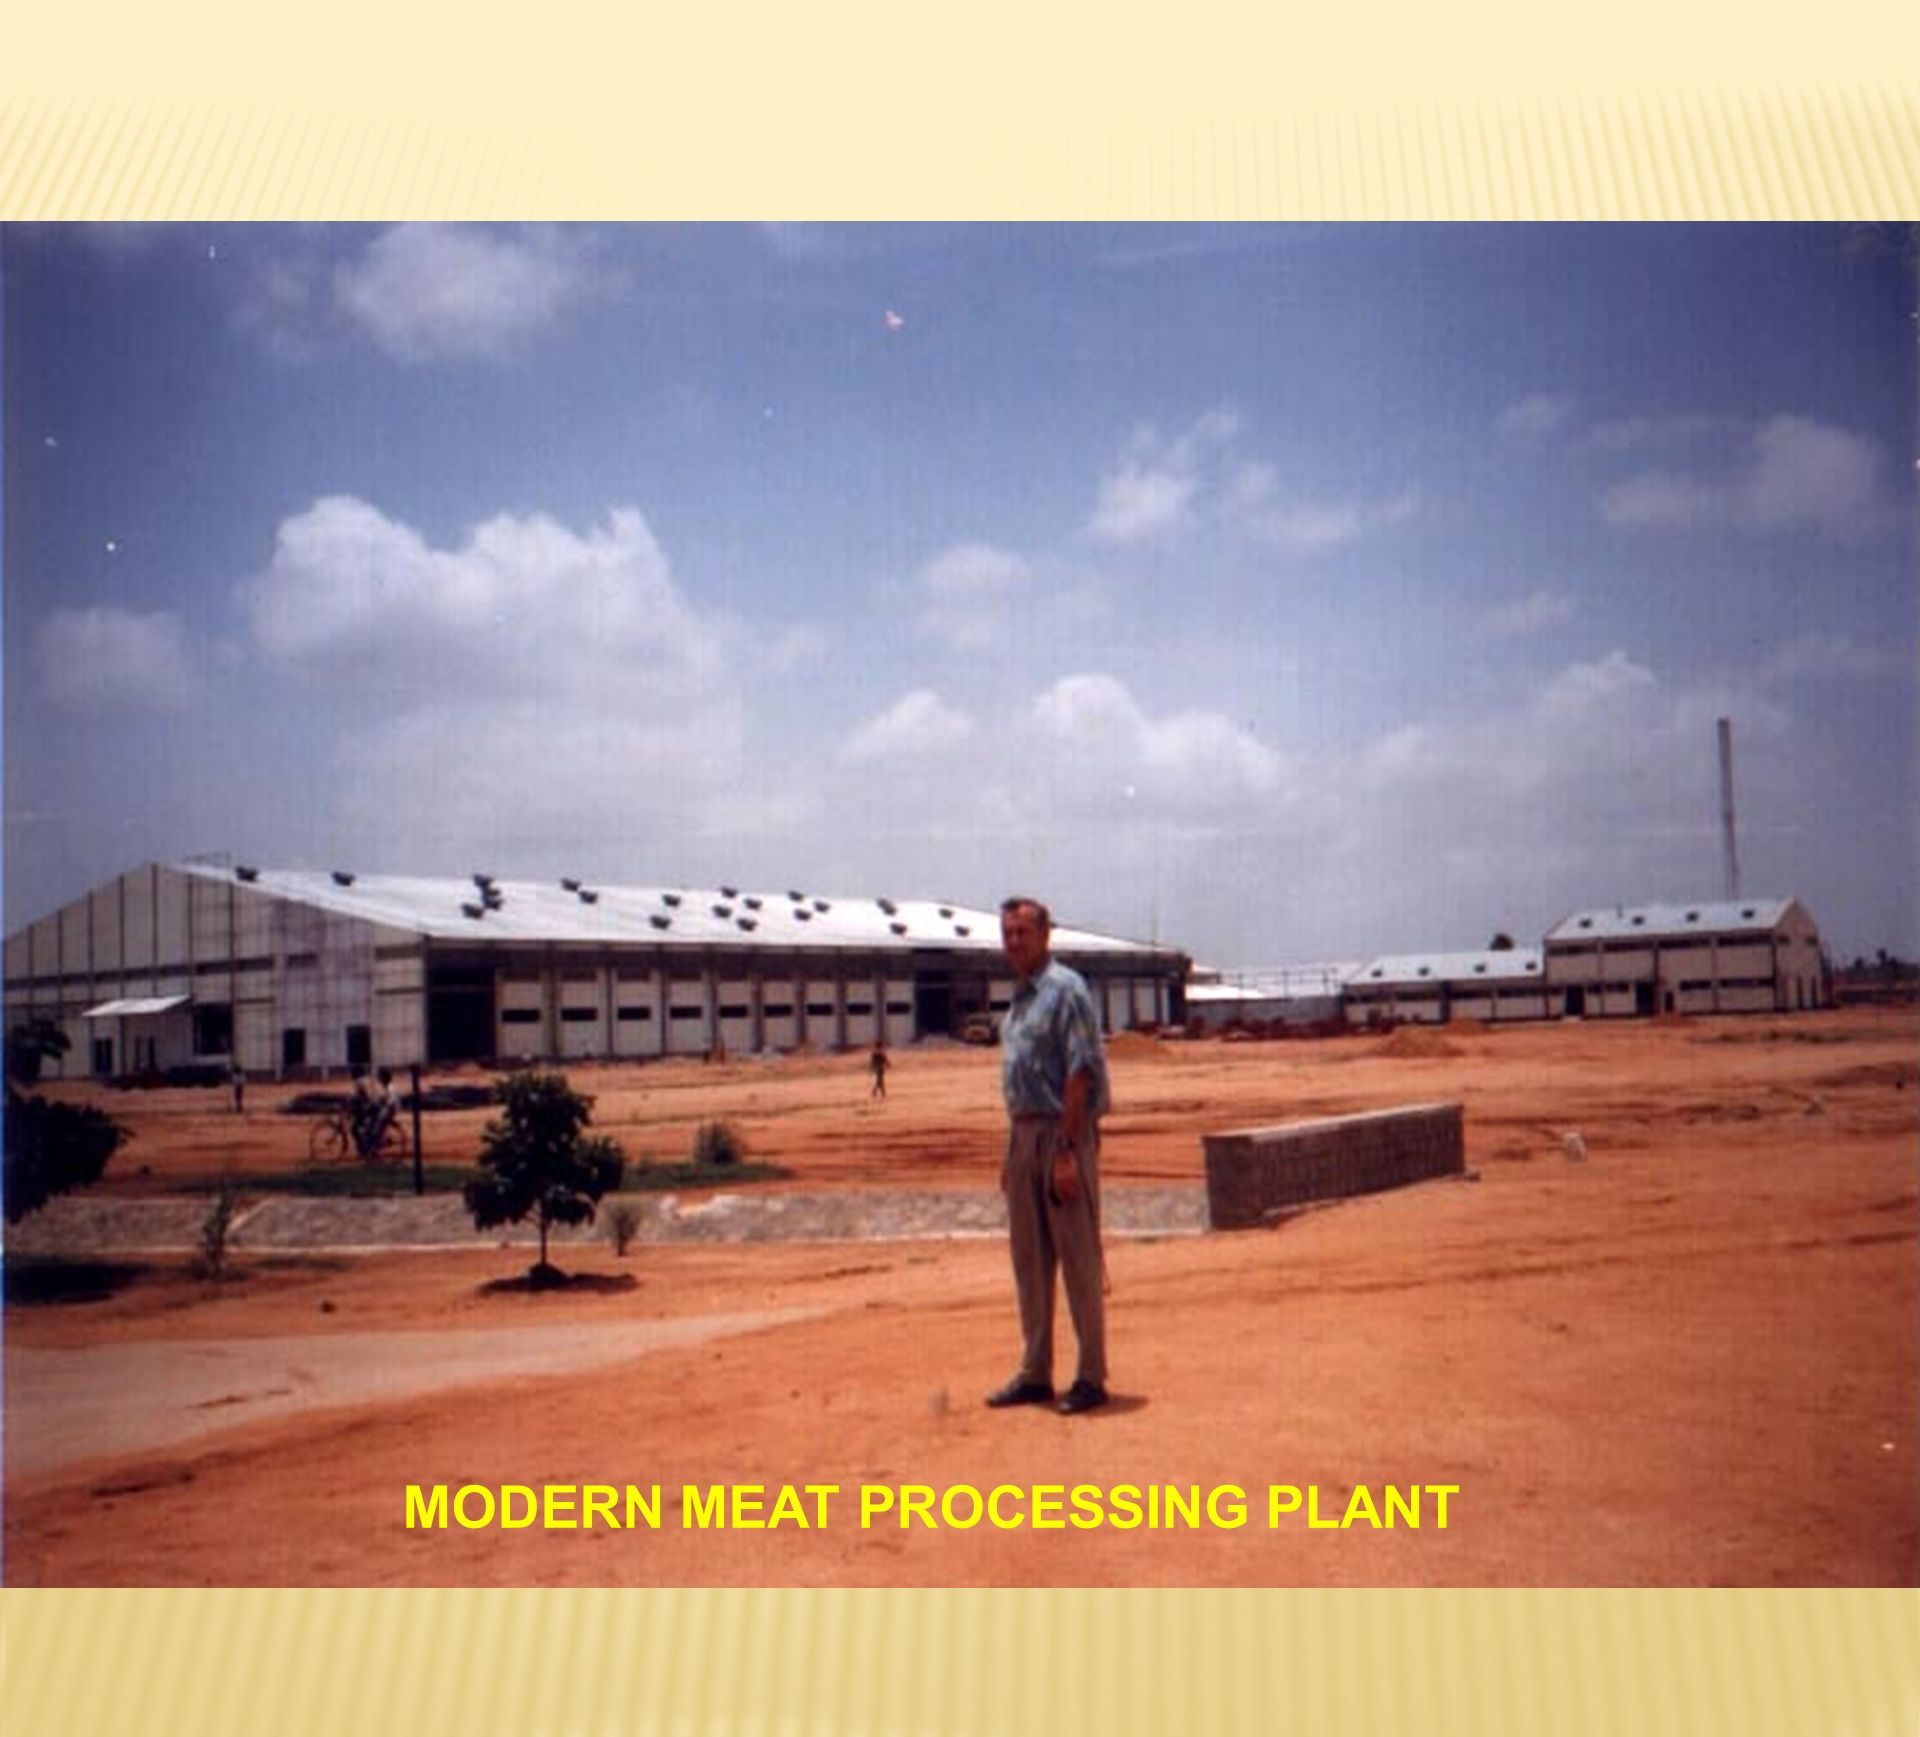 MODERN MEAT PROCESSING PLANT